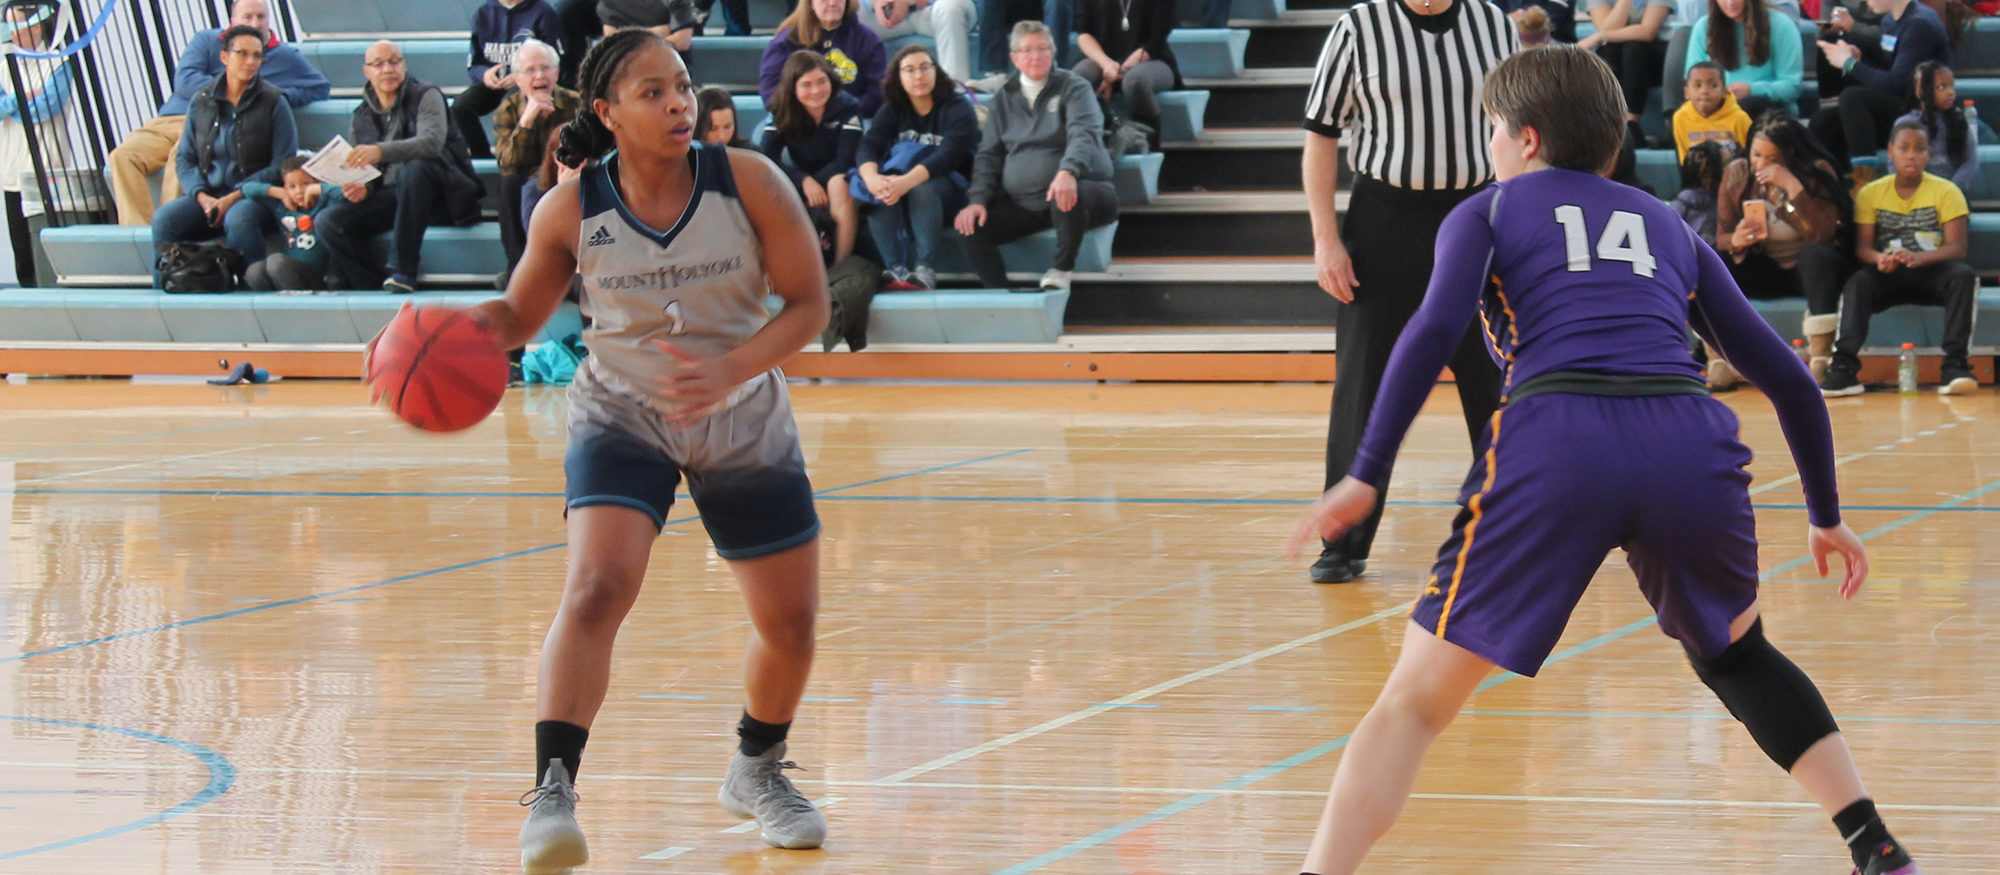 Action photo from the Feb. 16, 2019 basketball game against Emerson College of Lyons student-athlete Zahkeyah Allen.